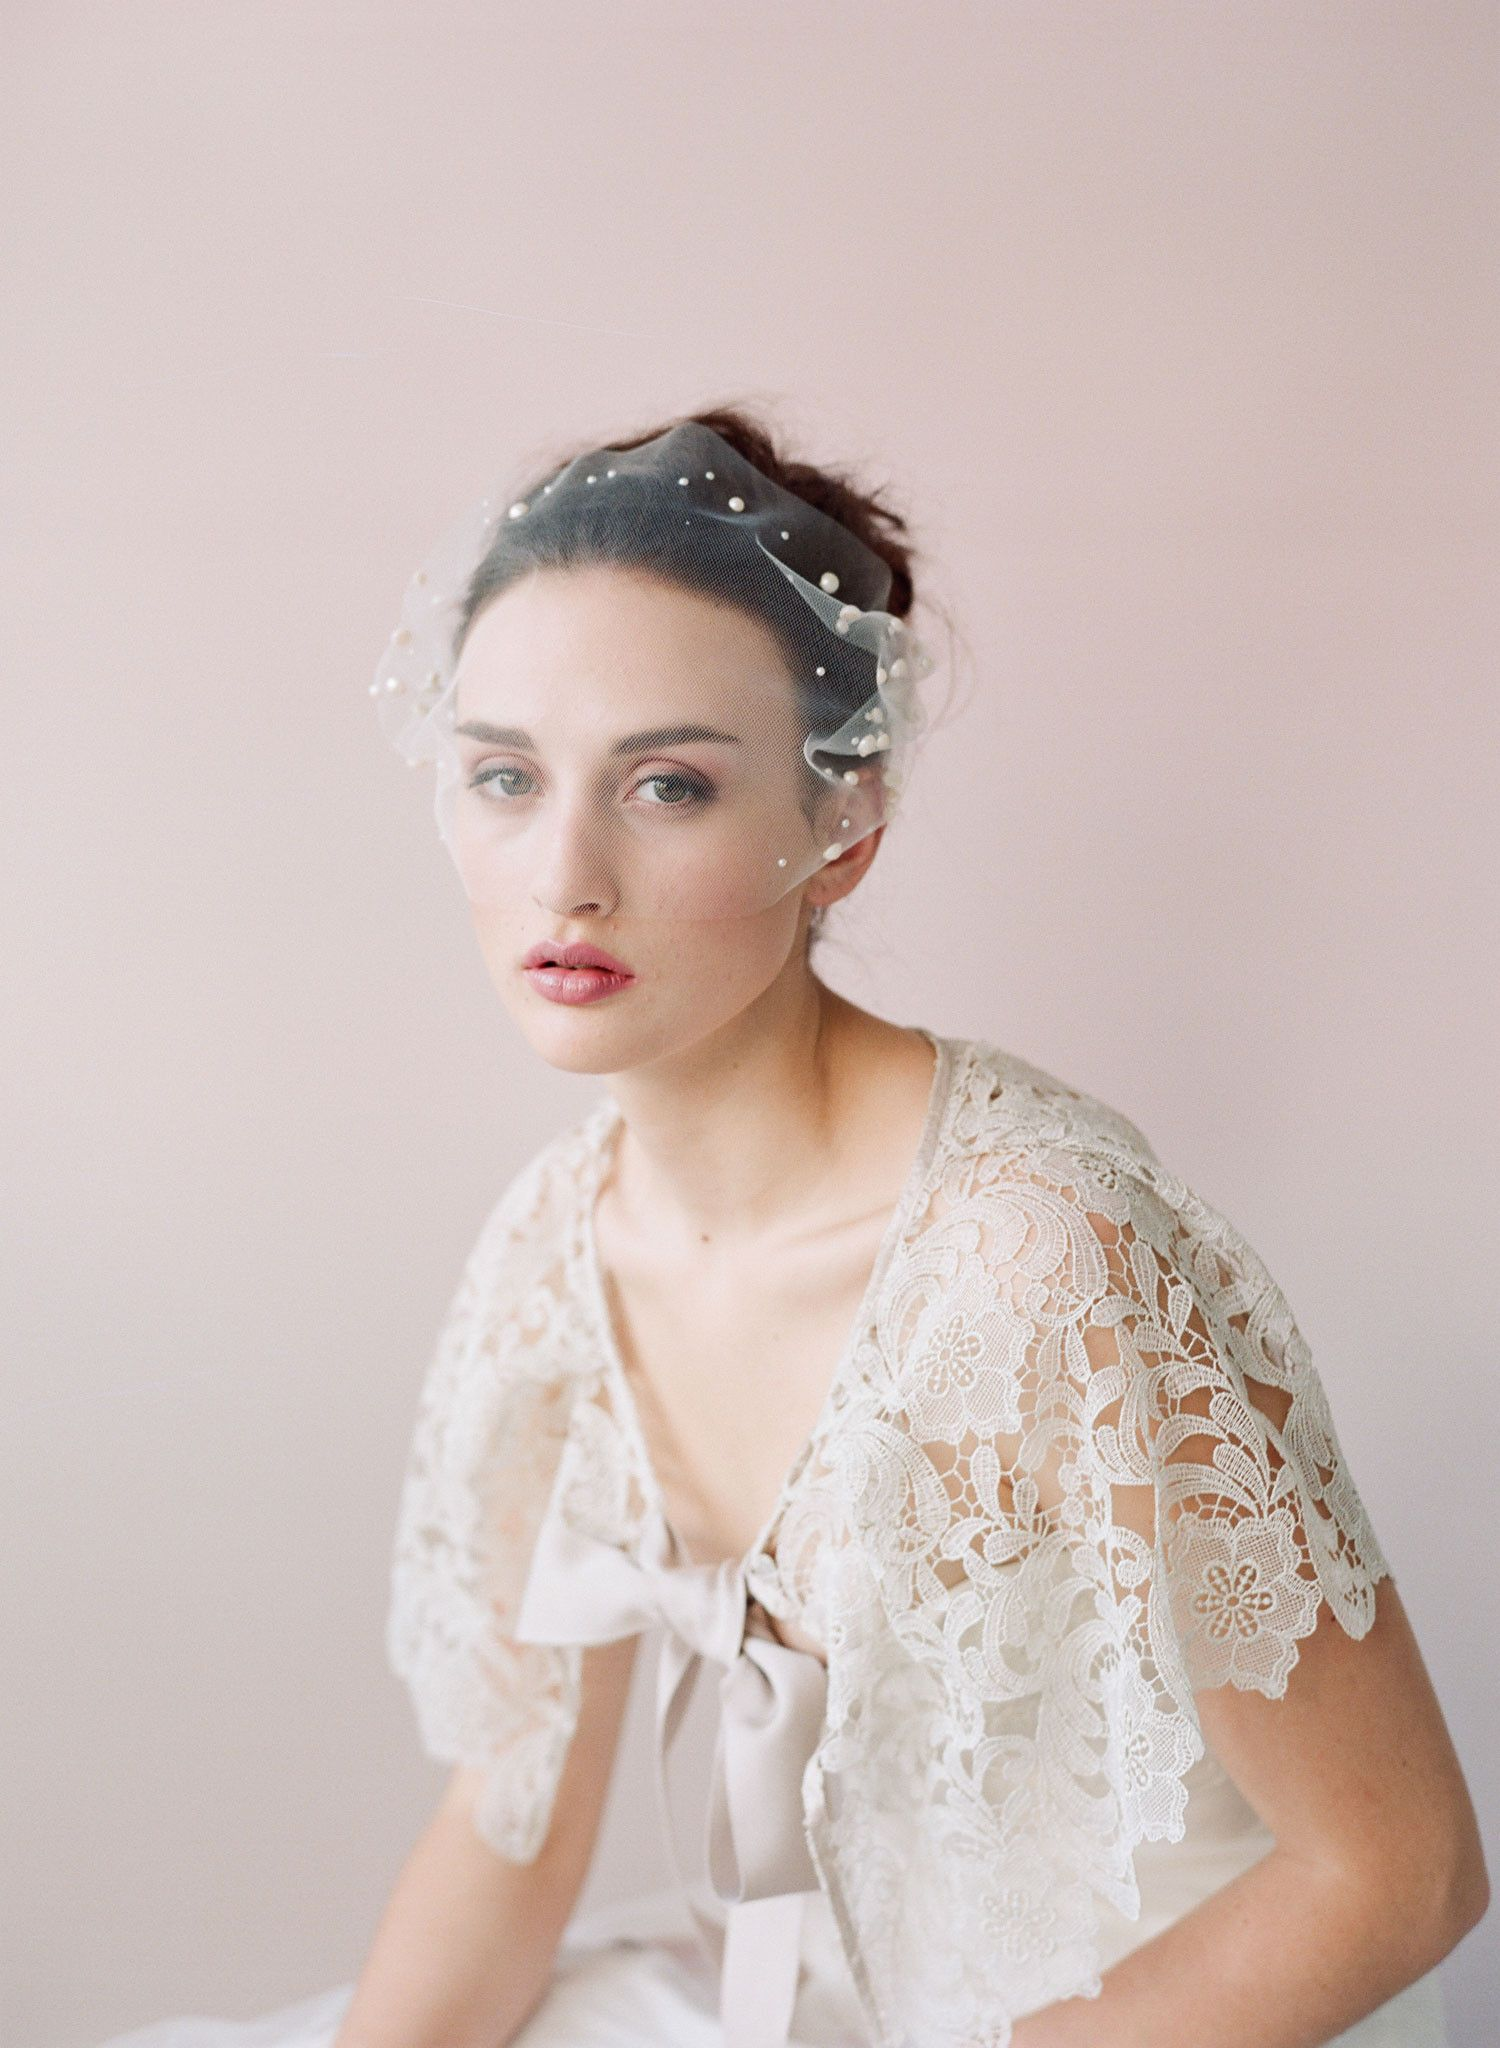 Pearl adorned tulle bandeau veil style veil wedding and